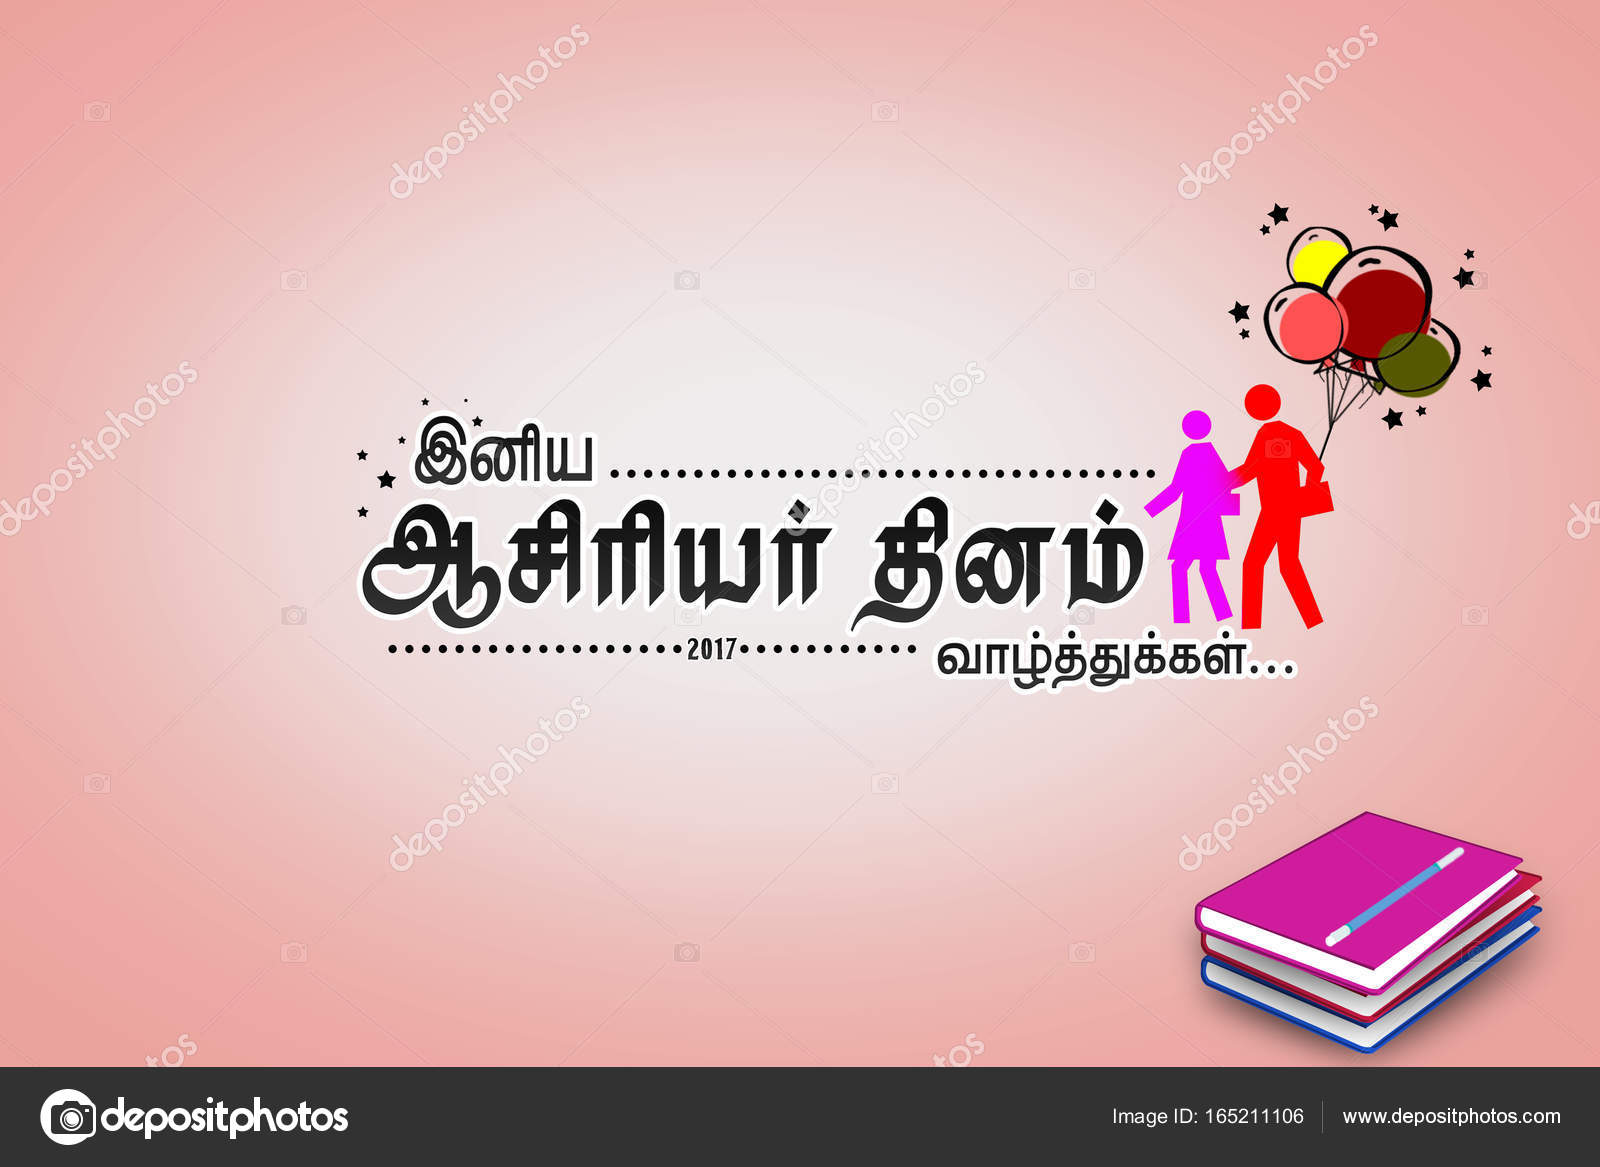 Happy teachers day greeting card in tamil stock photo avpk happy teachers day greeting card in tamil stock photo m4hsunfo